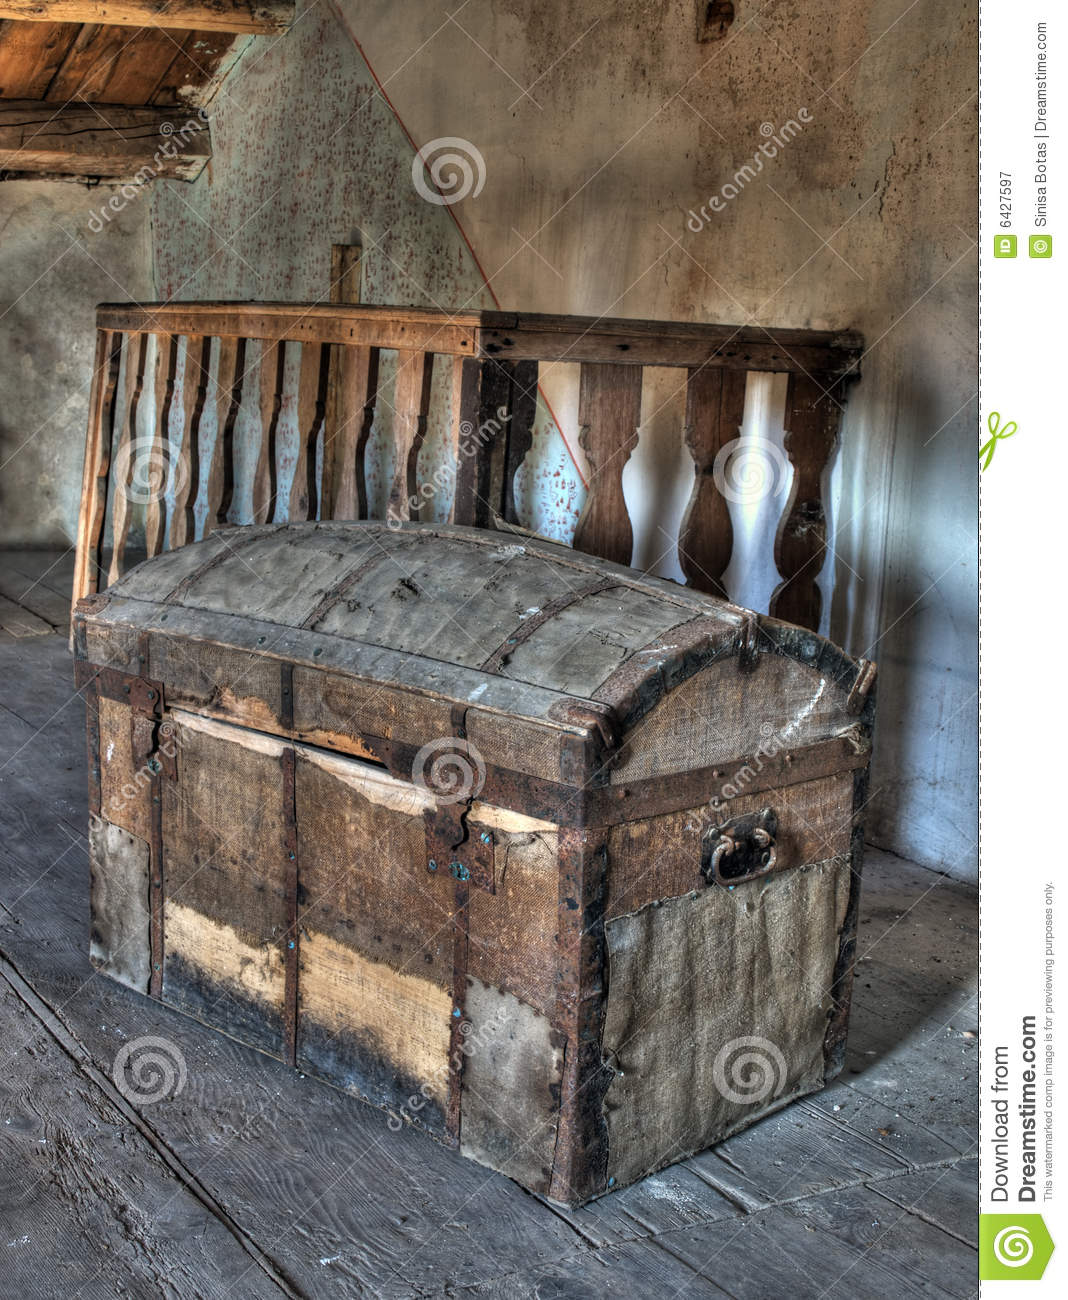 pirate treasure chest royalty free stock photography image 6427597